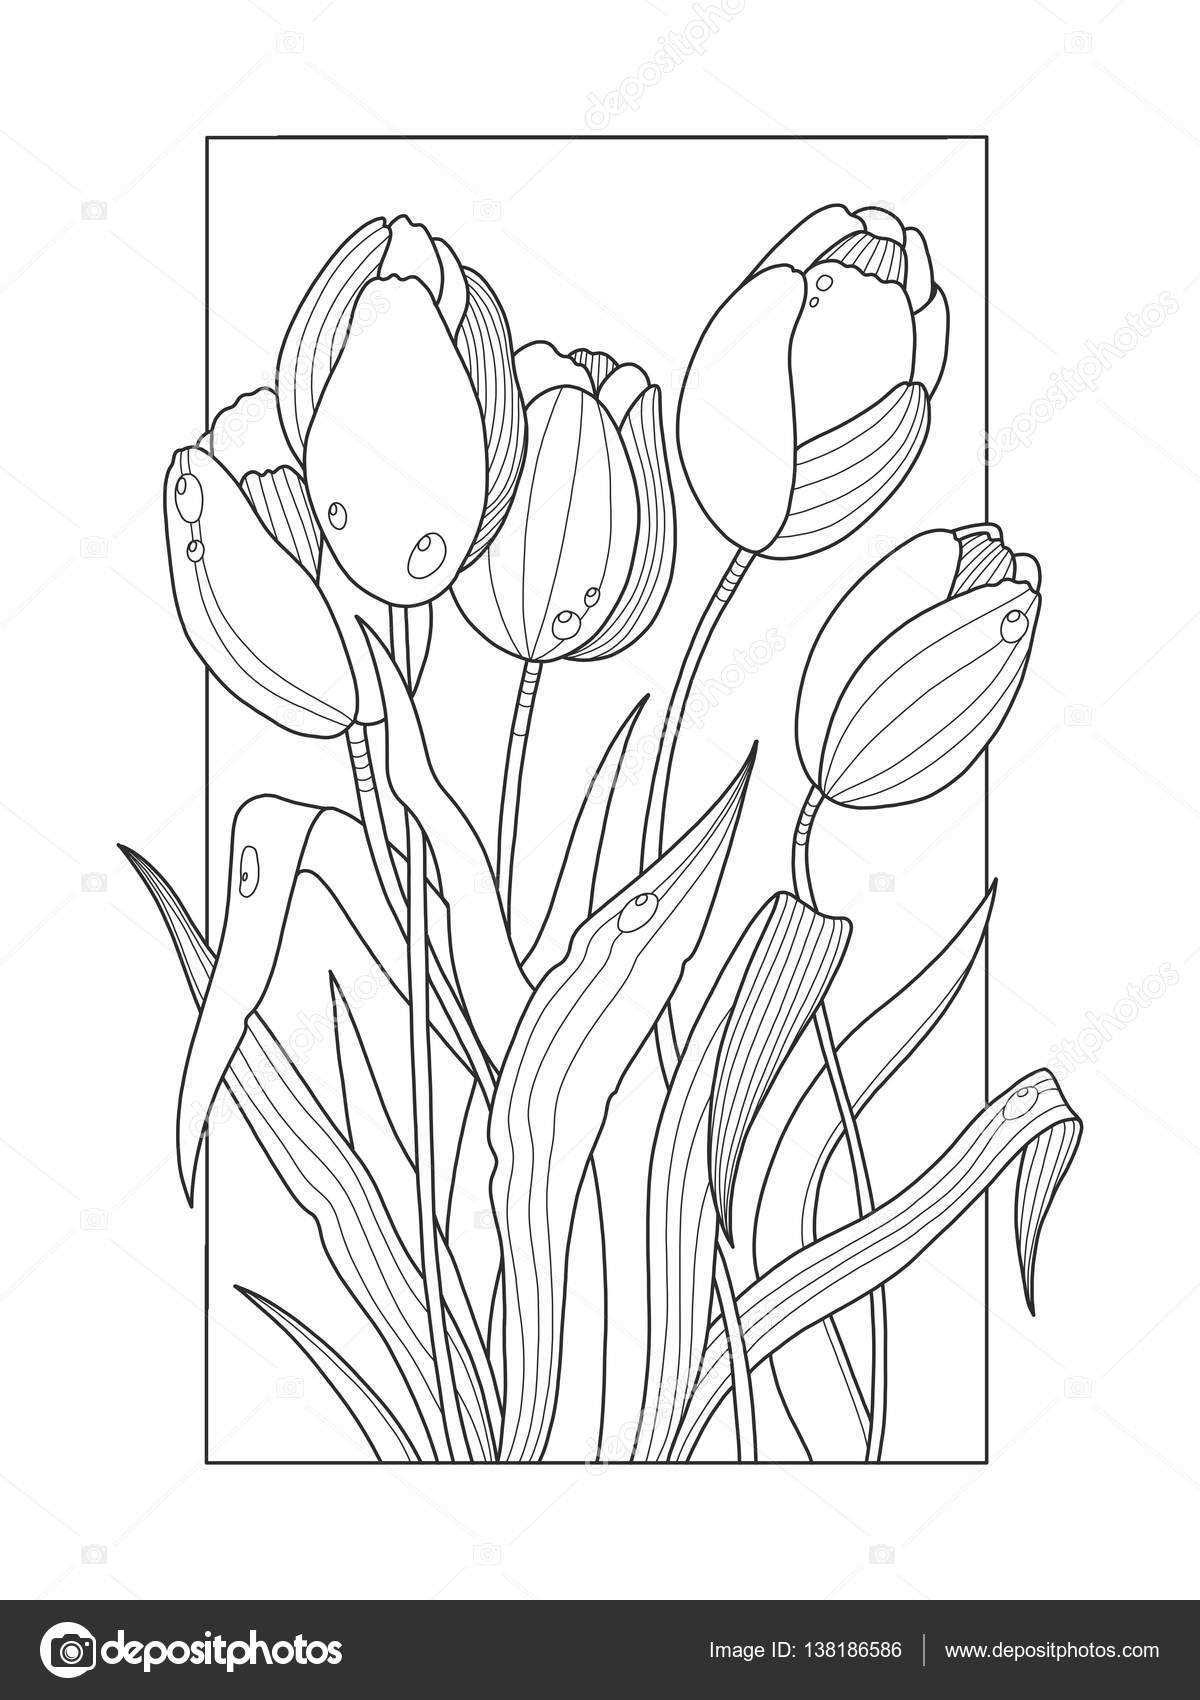 Tulipe dessins coloriage adulte - Coloriage tulipe ...